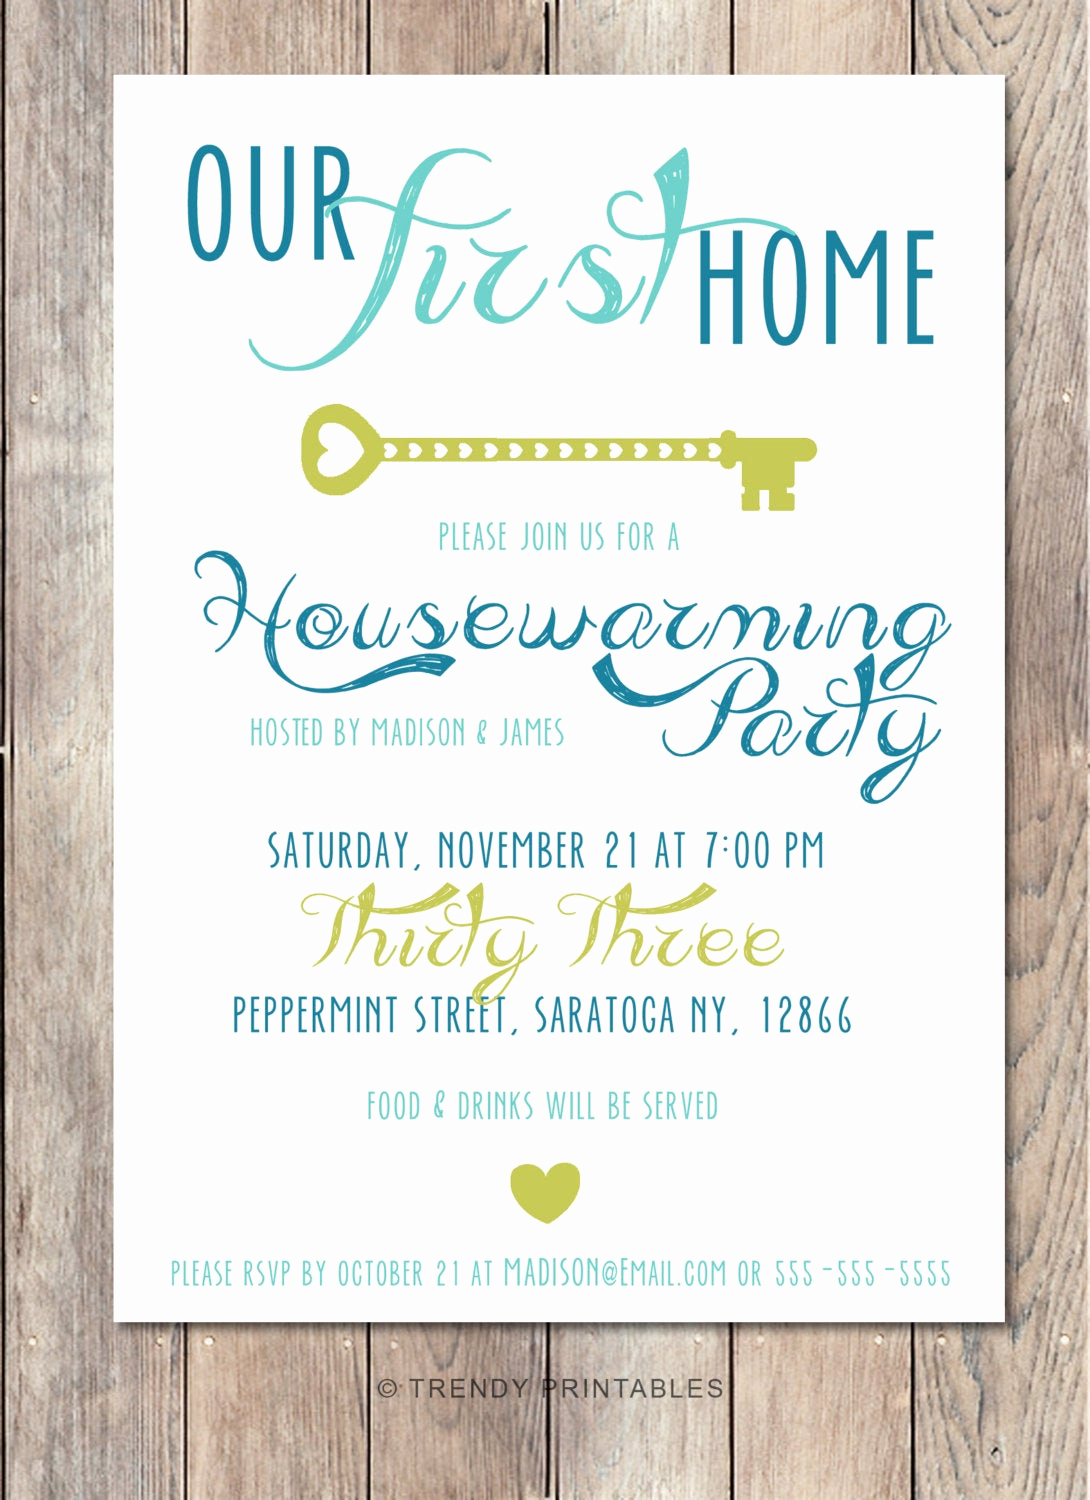 House Warming Party Invitation Template Inspirational Housewarming Party Invitation Housewarming Invitation